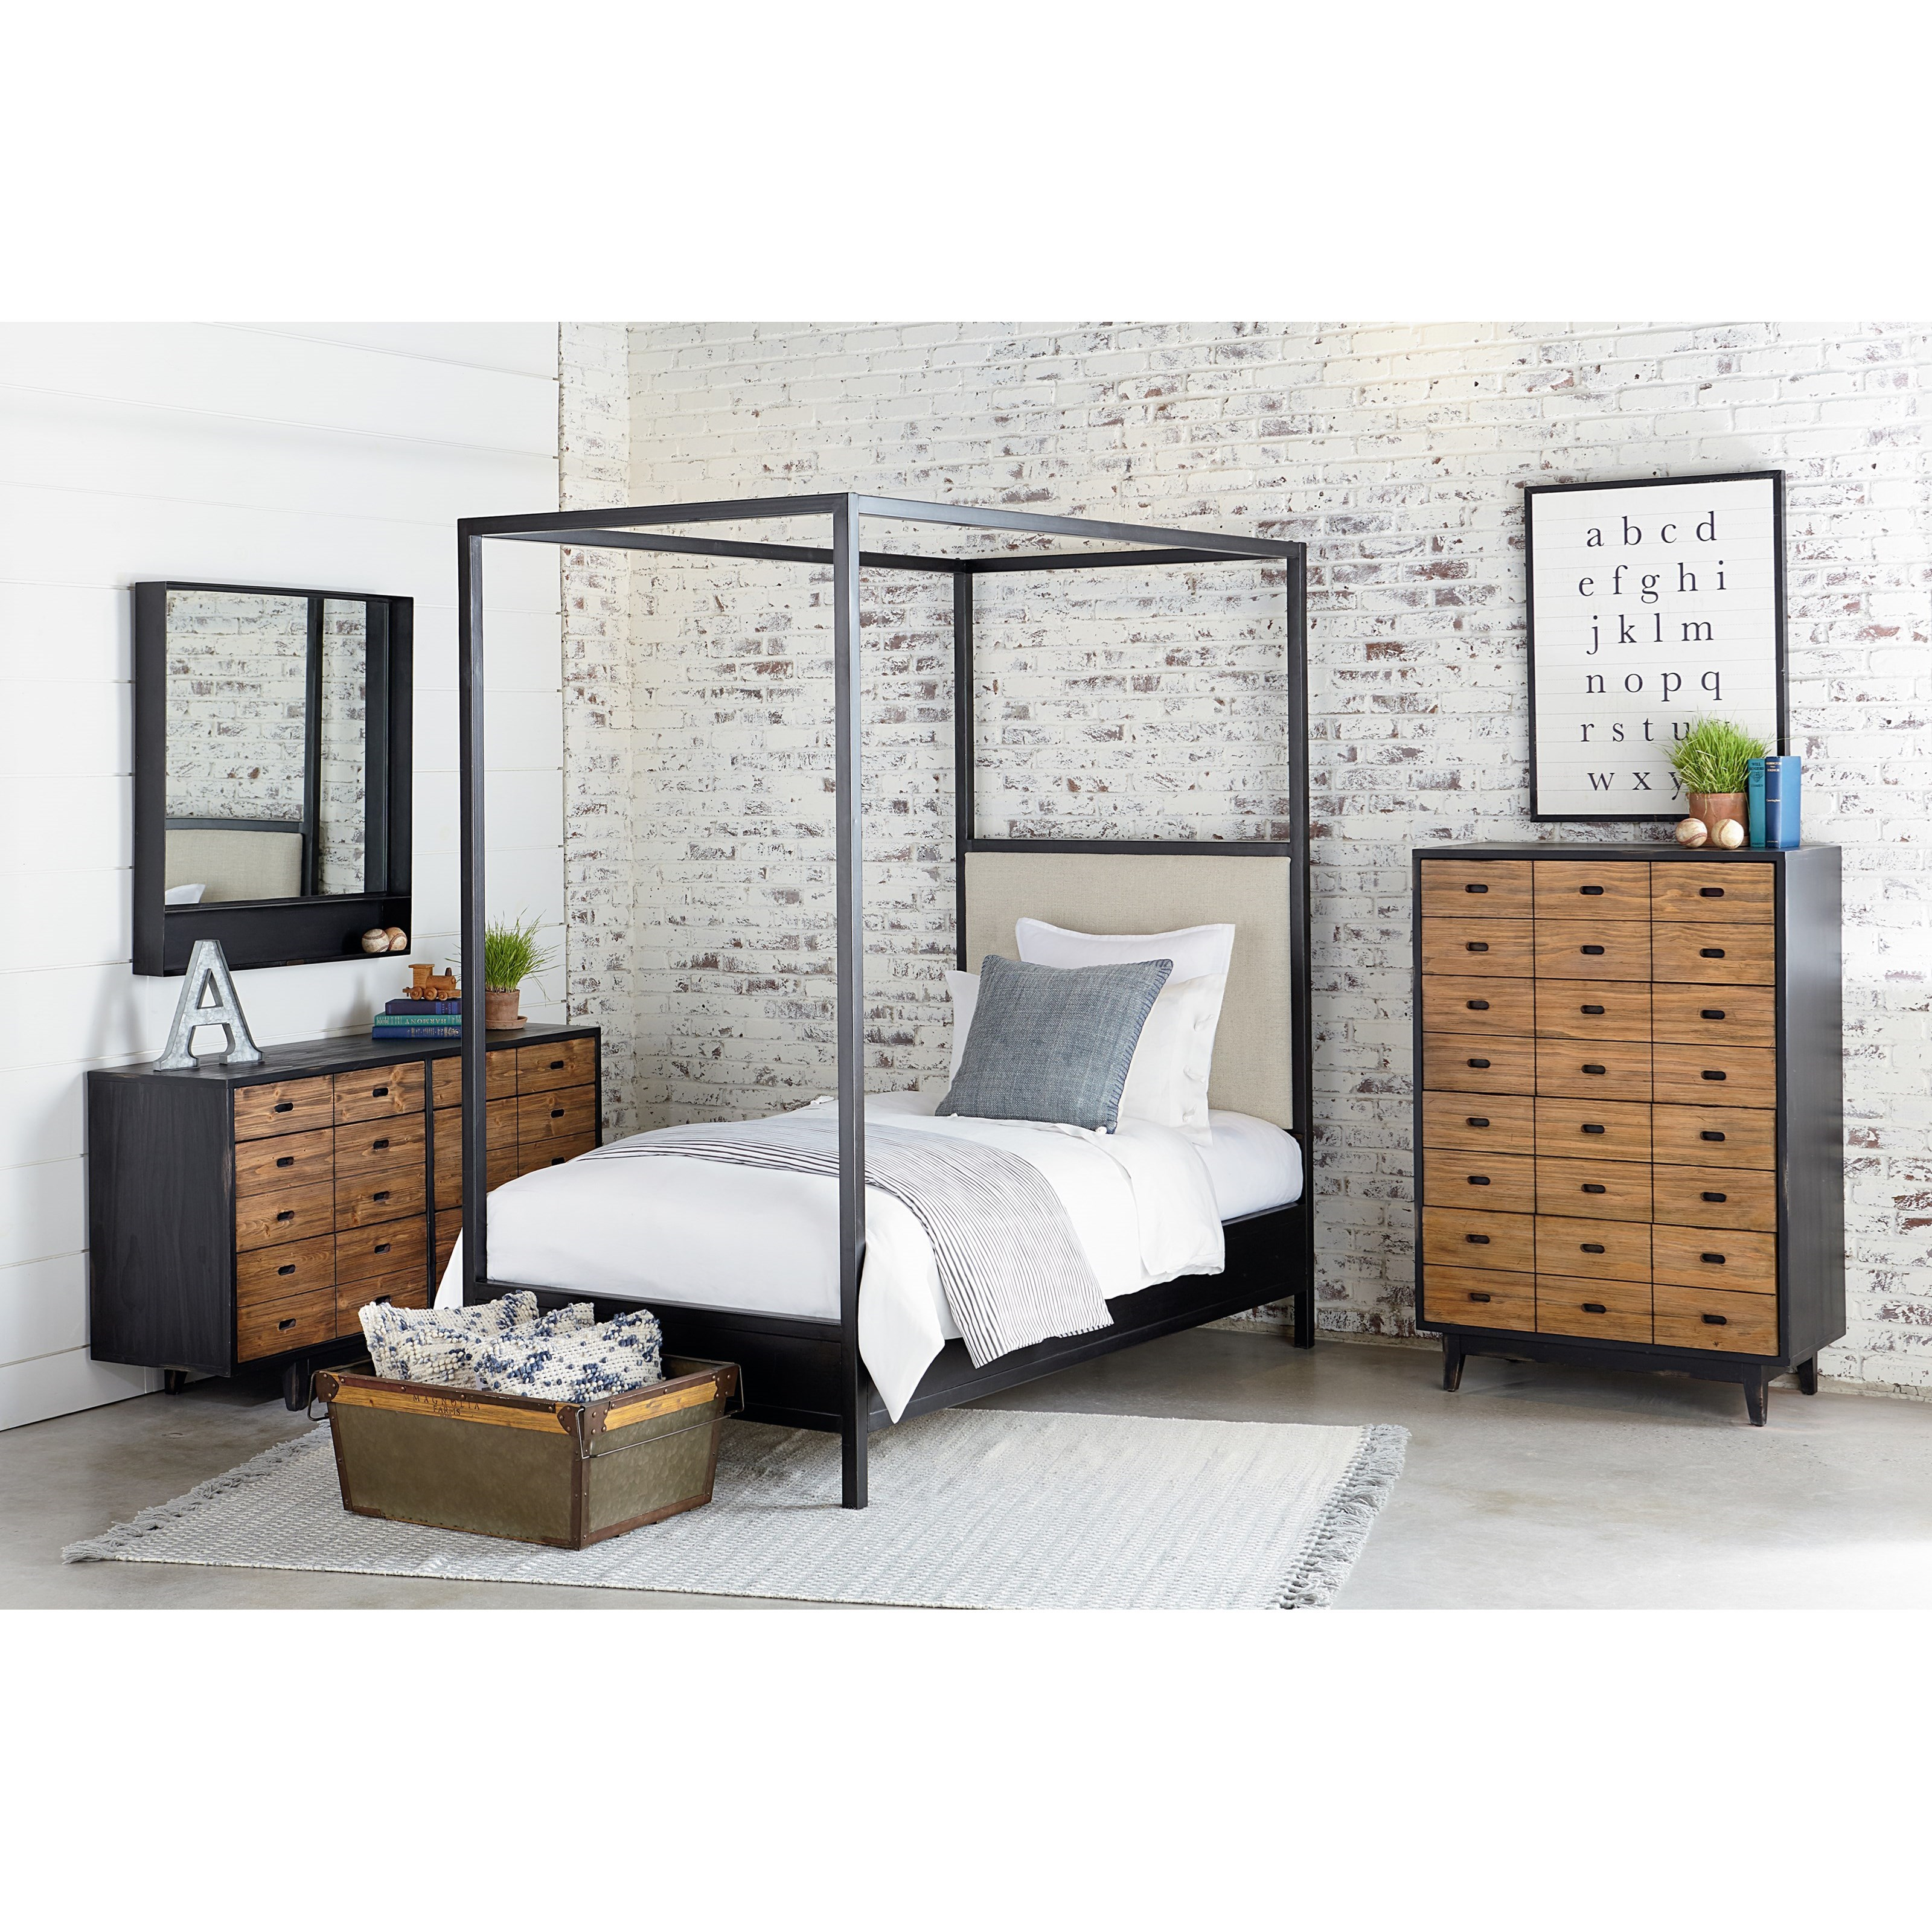 Magnolia Home By Joanna Gaines Industrial Full Bedroom Group   Item Number:  Kettle F Bedroom